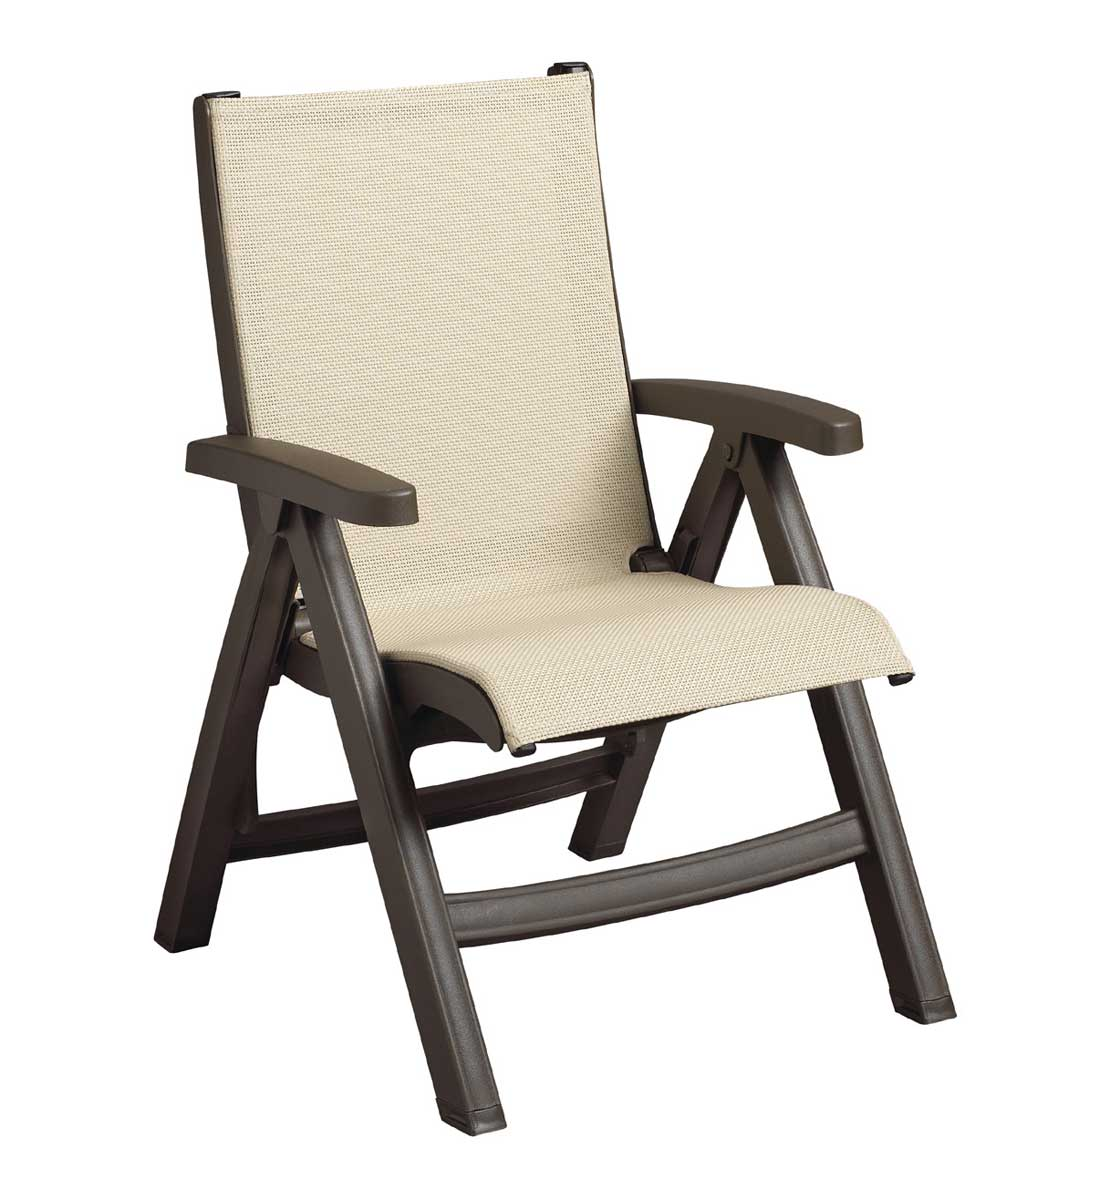 Patio Folding Chairs Folding Patio Chairs And Table For Office